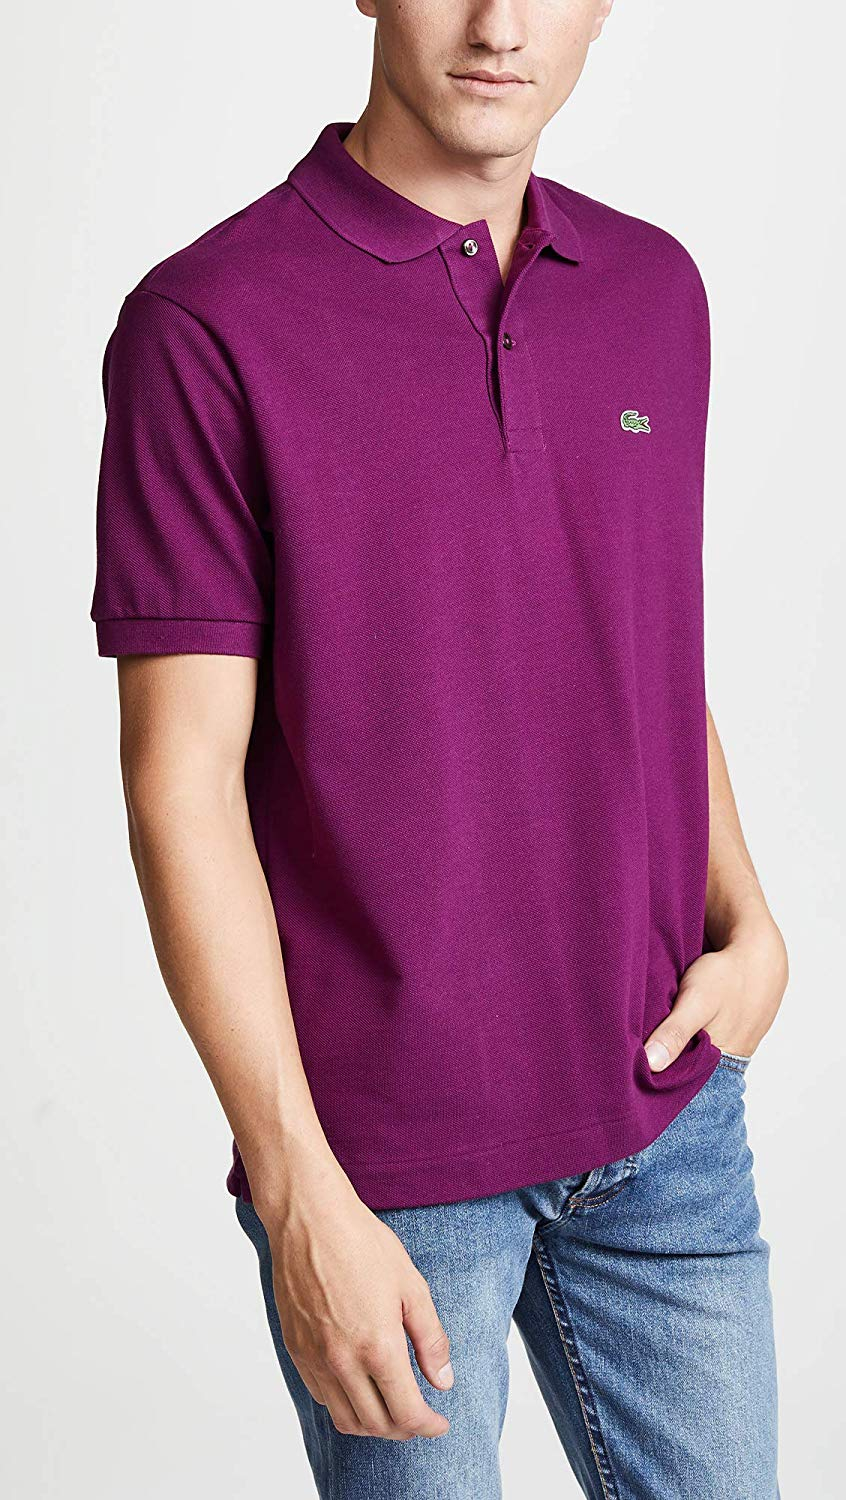 d89f745b5 Lacoste Men's Short Sleeve Pique L.12.12 Original Fit Polo Shirt ...